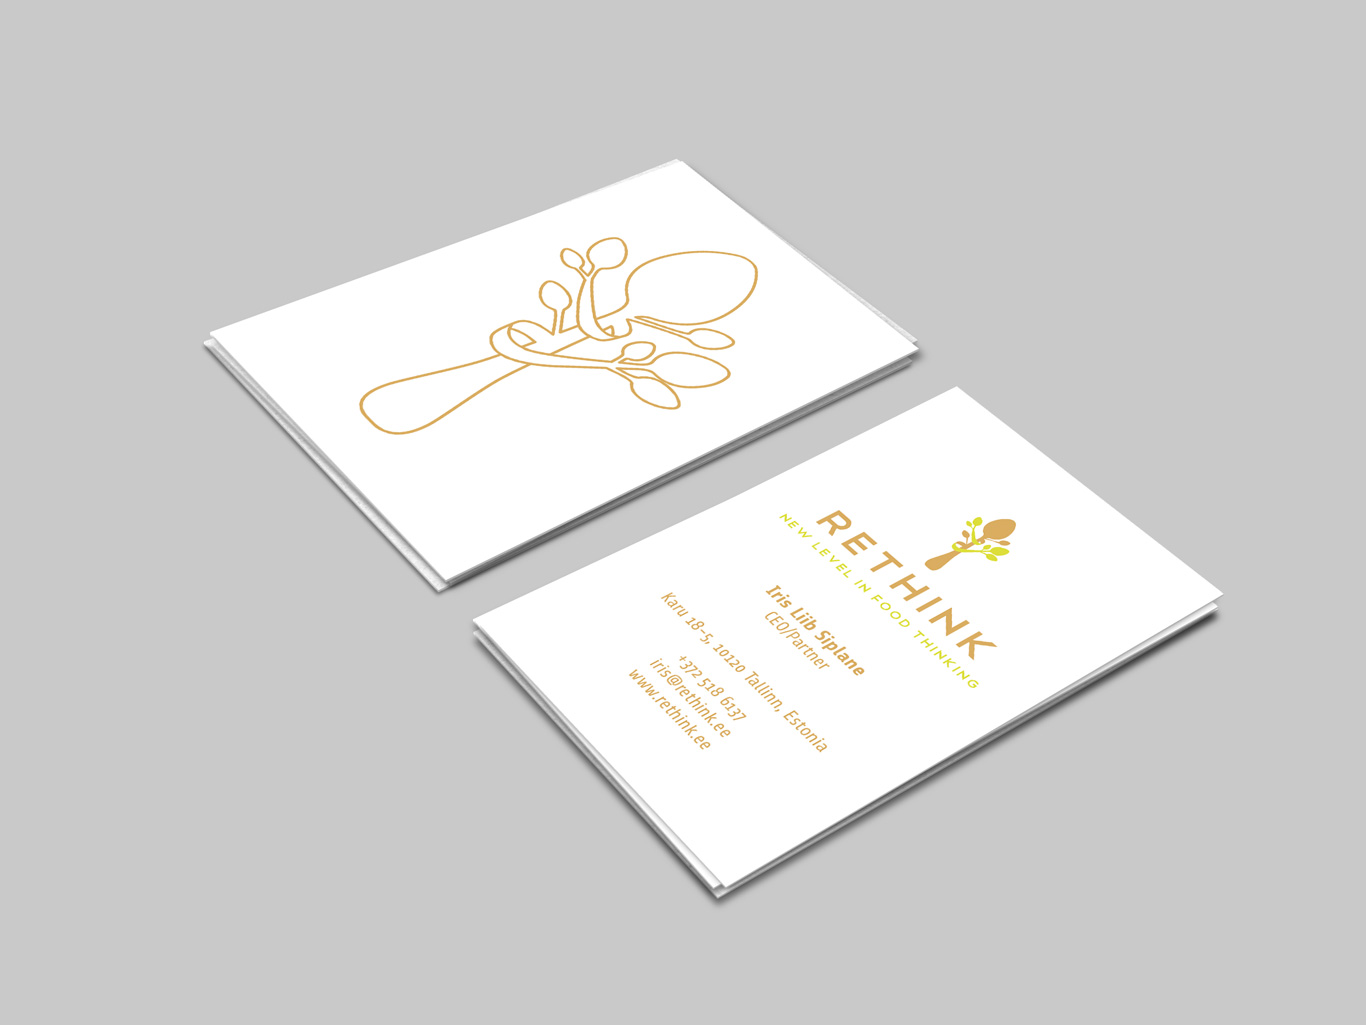 rethink-business-card-mockup